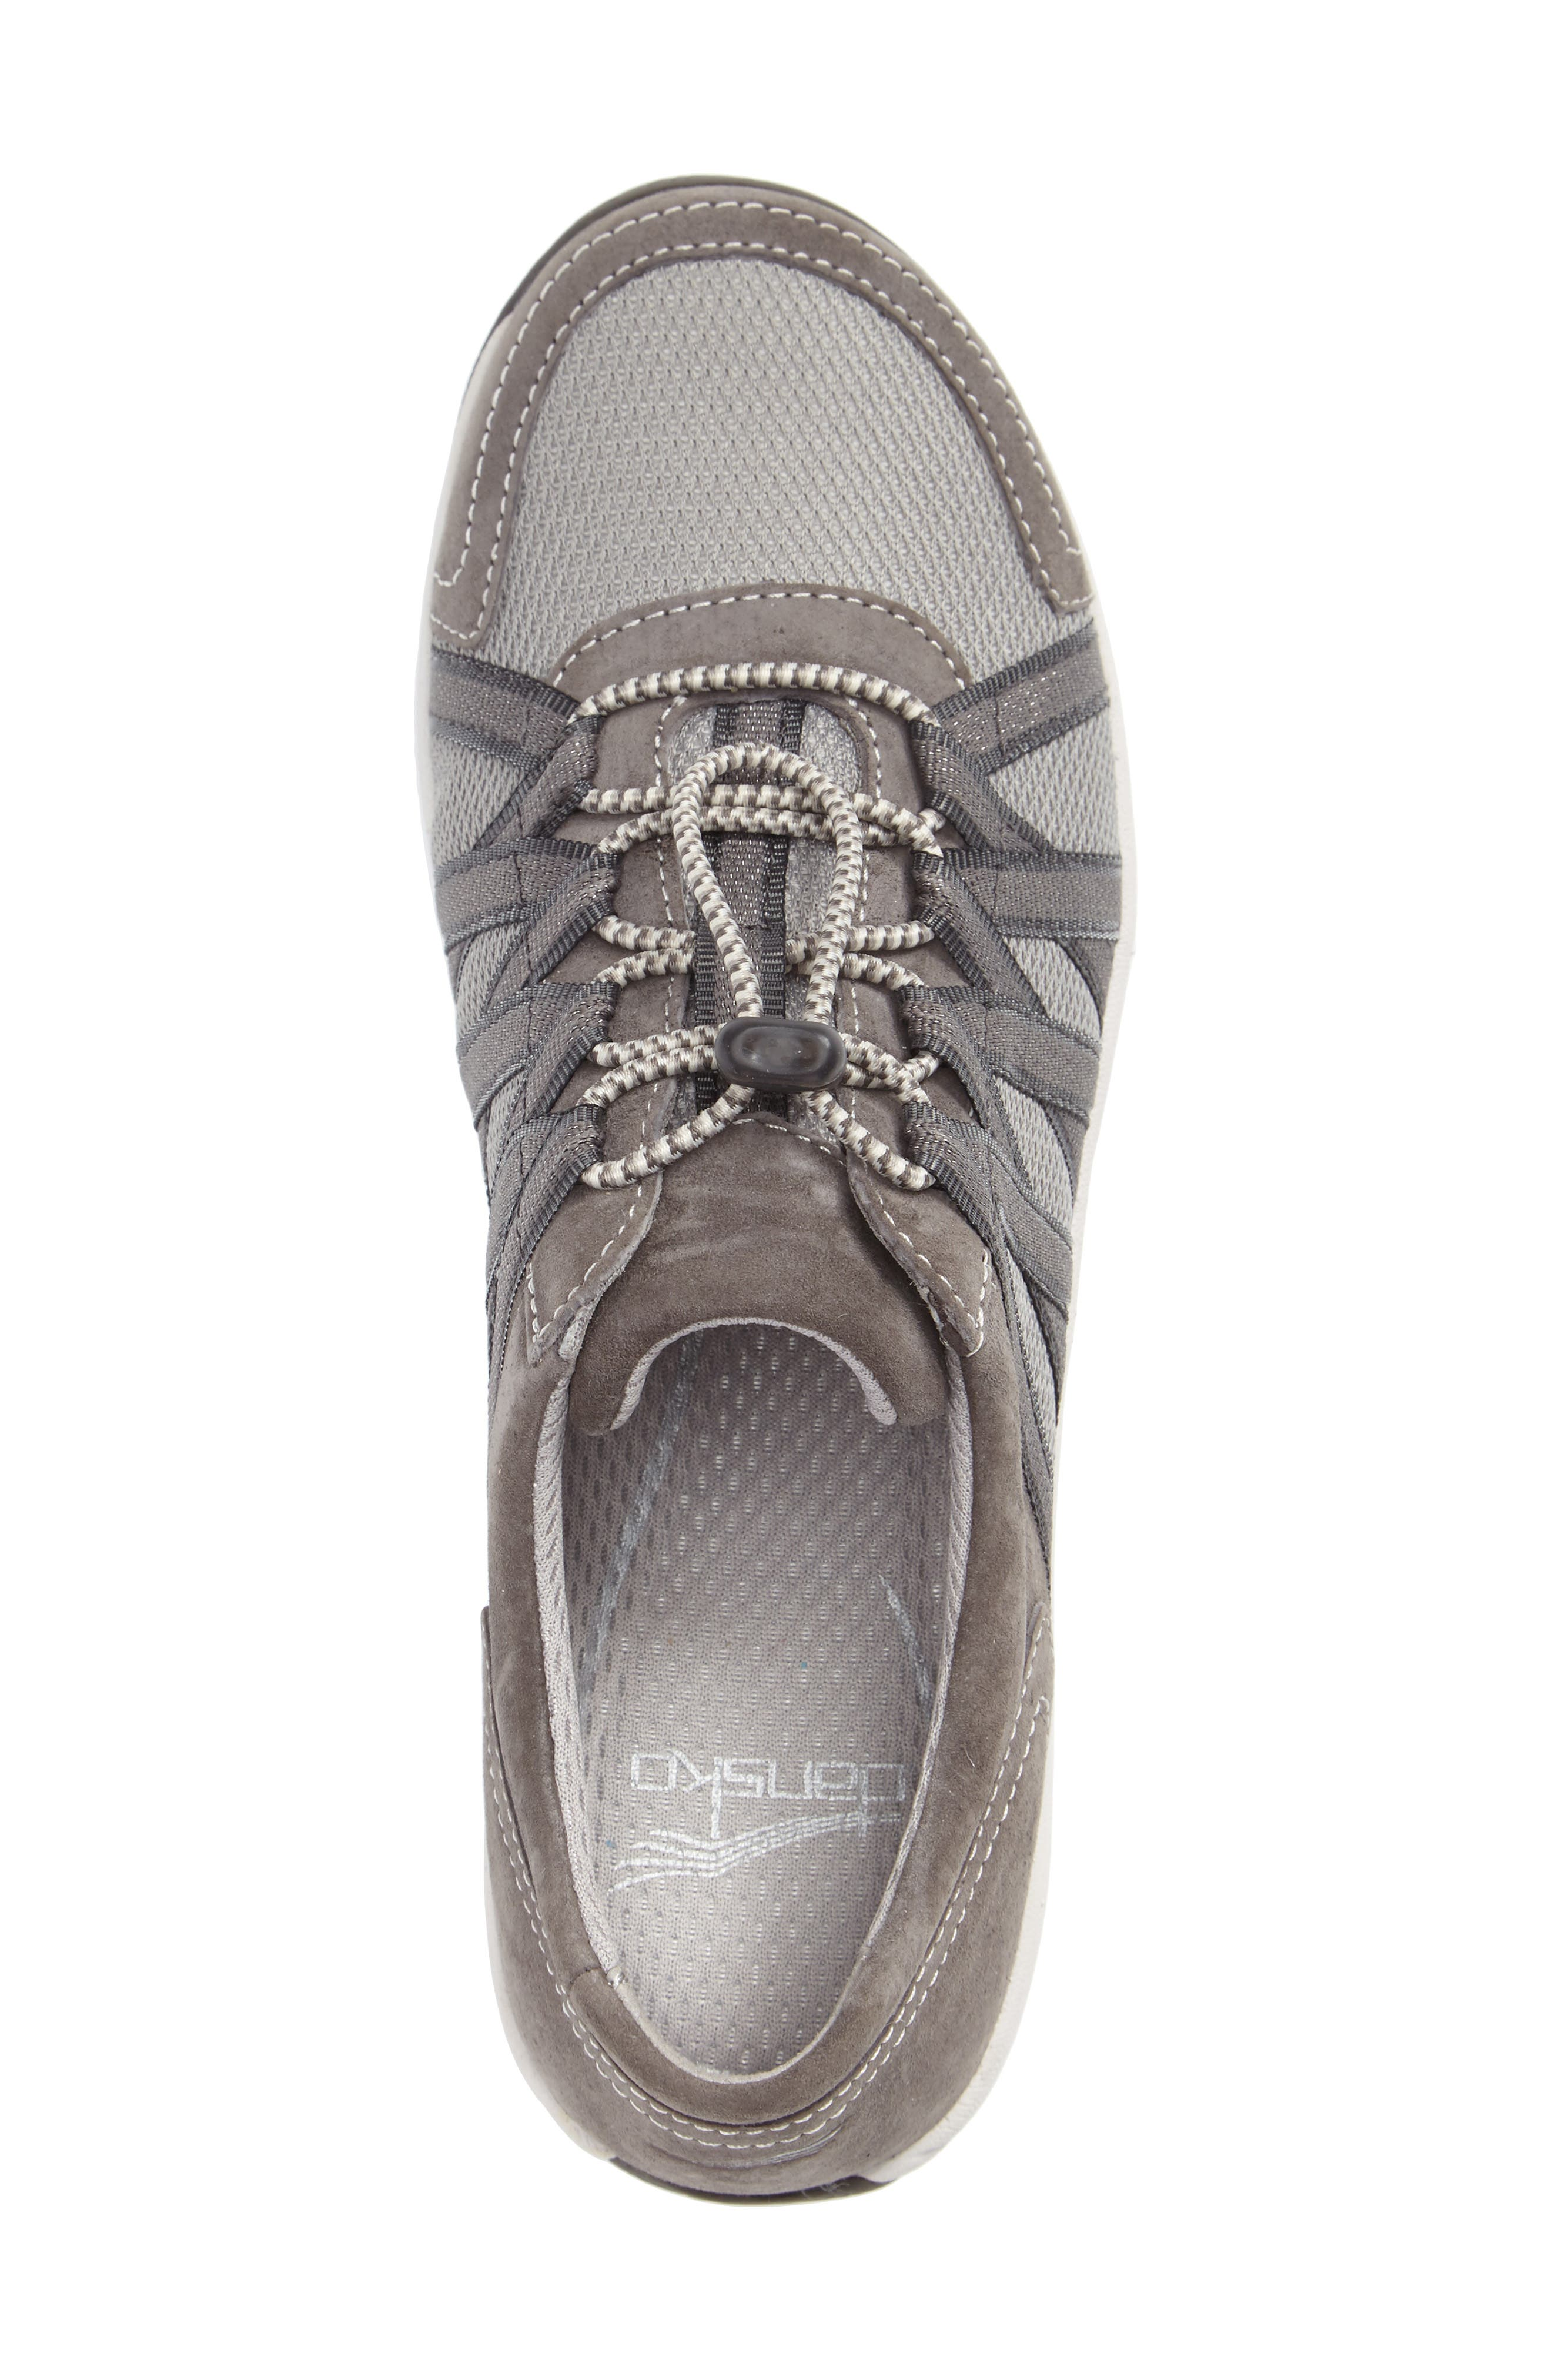 Halifax Collection Honor Sneaker,                             Alternate thumbnail 22, color,